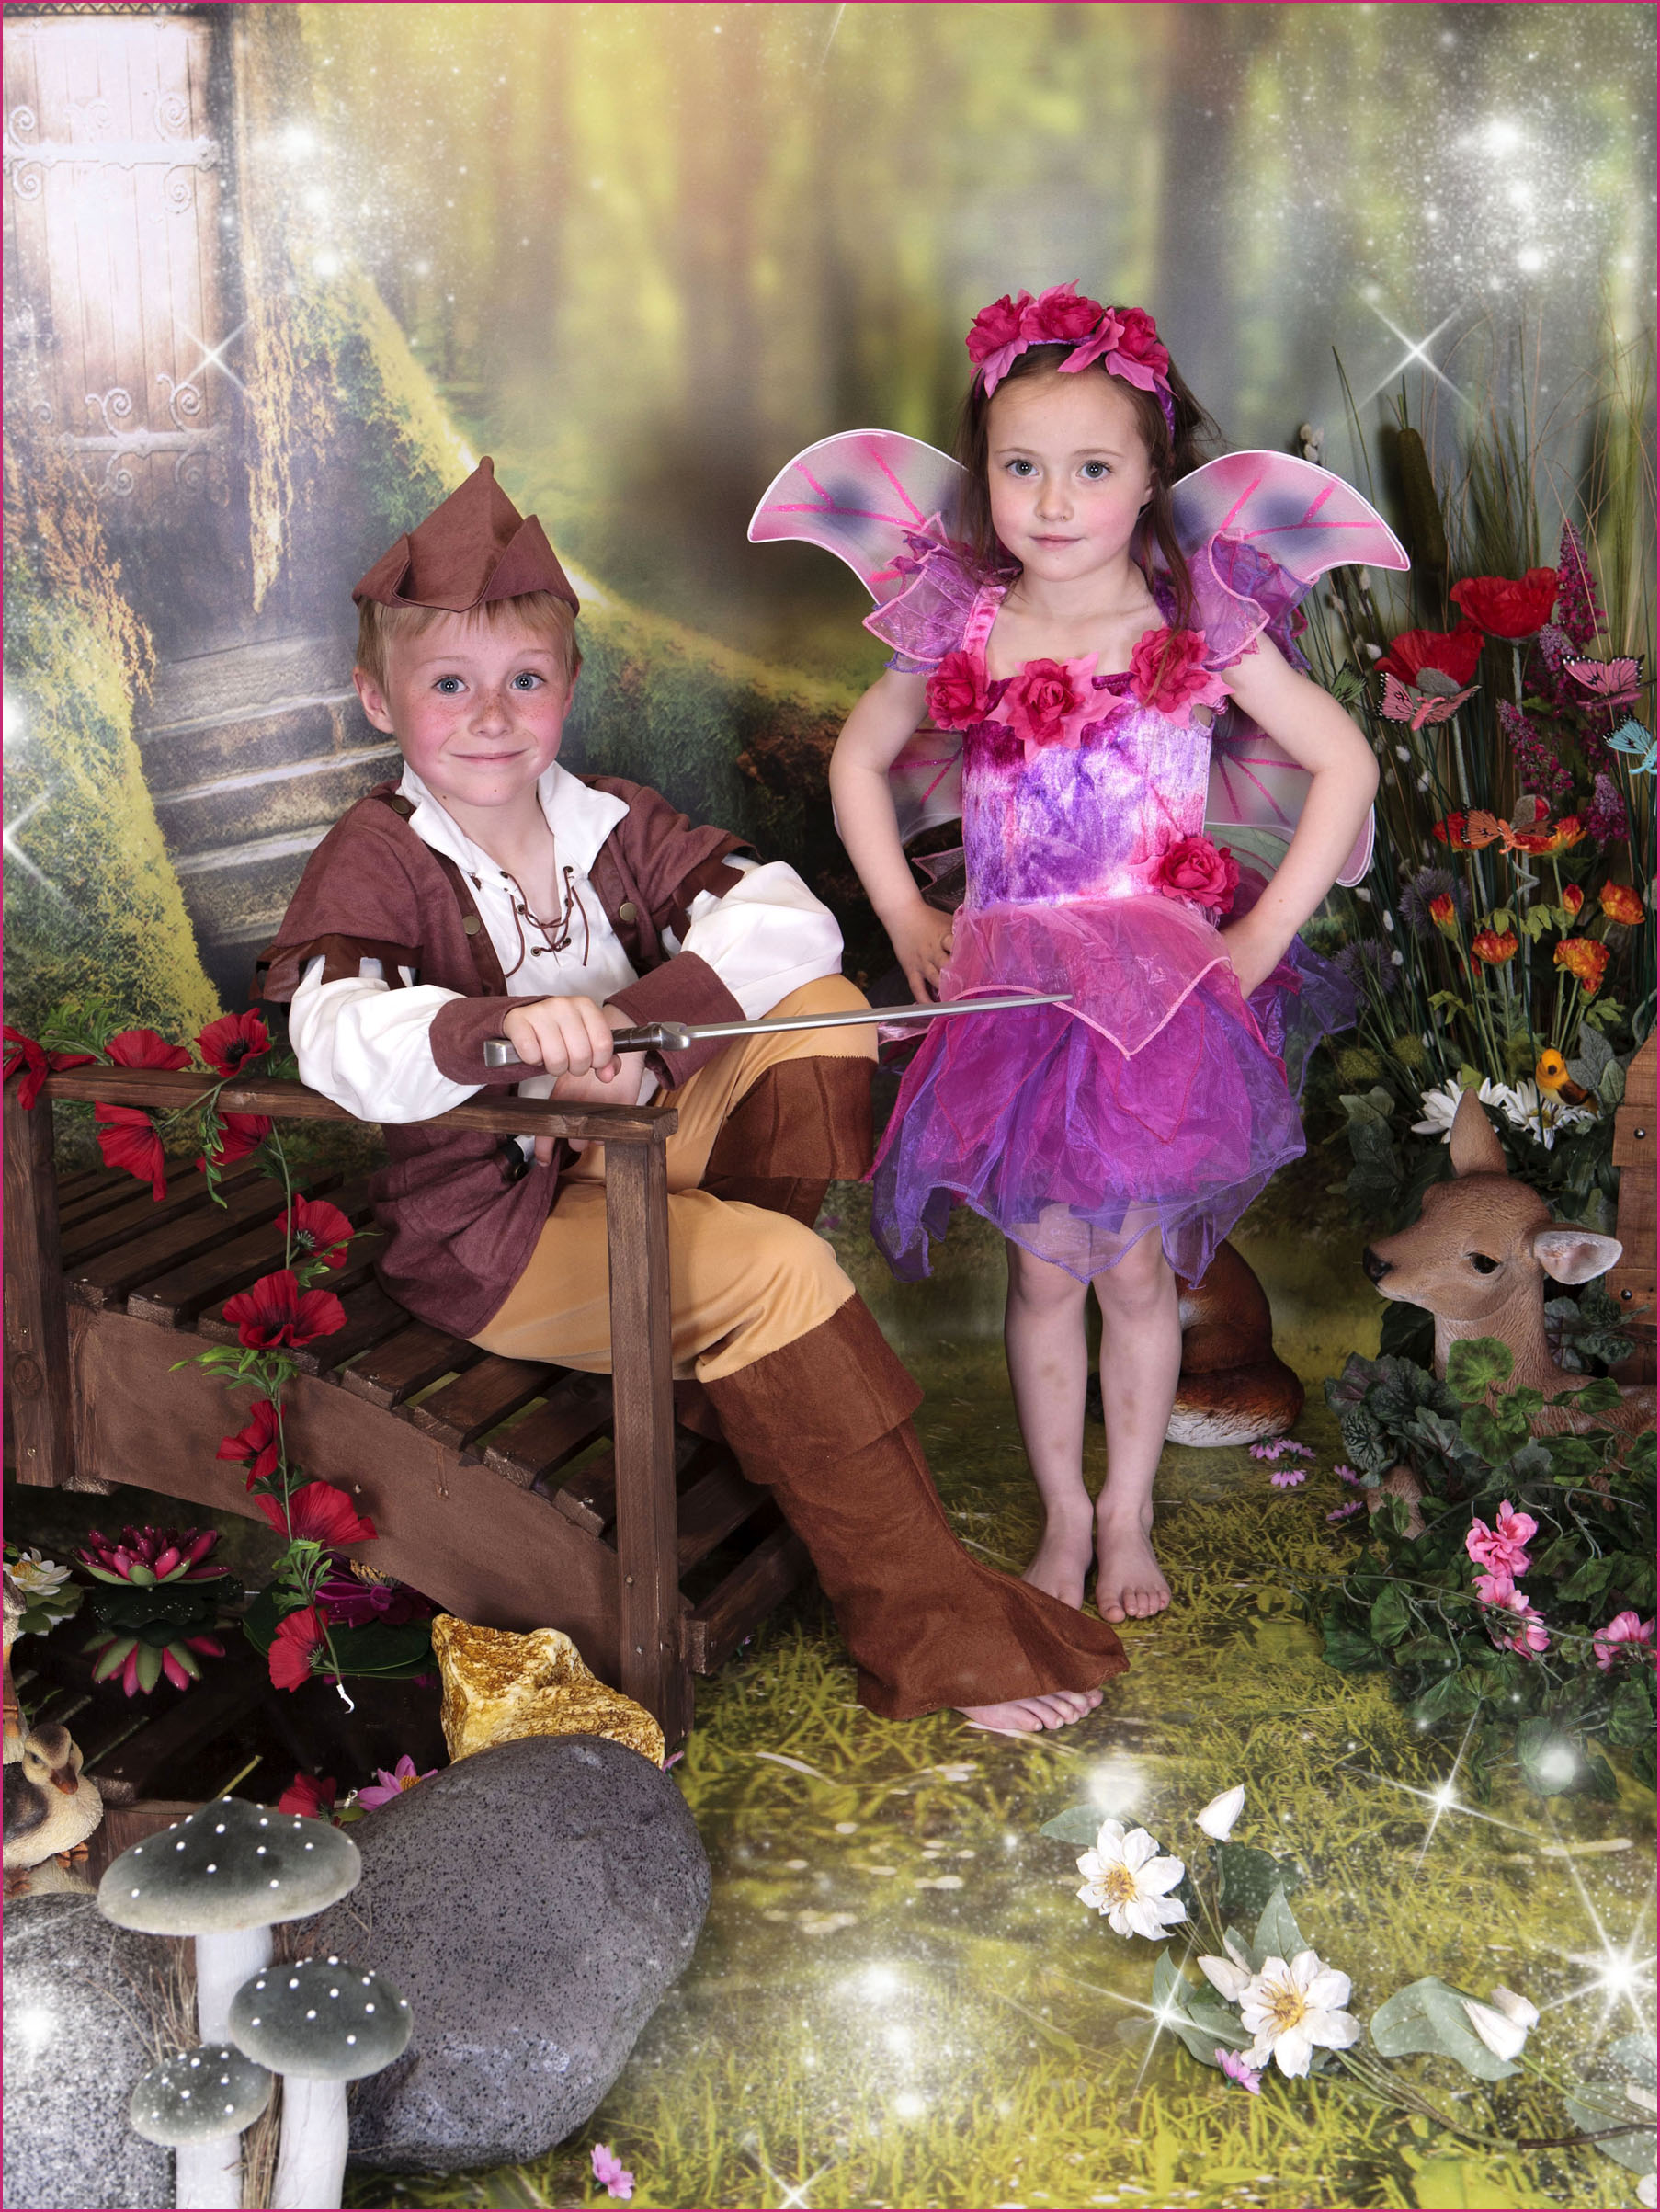 Fairy Photography Newcastle, Finley & Lily